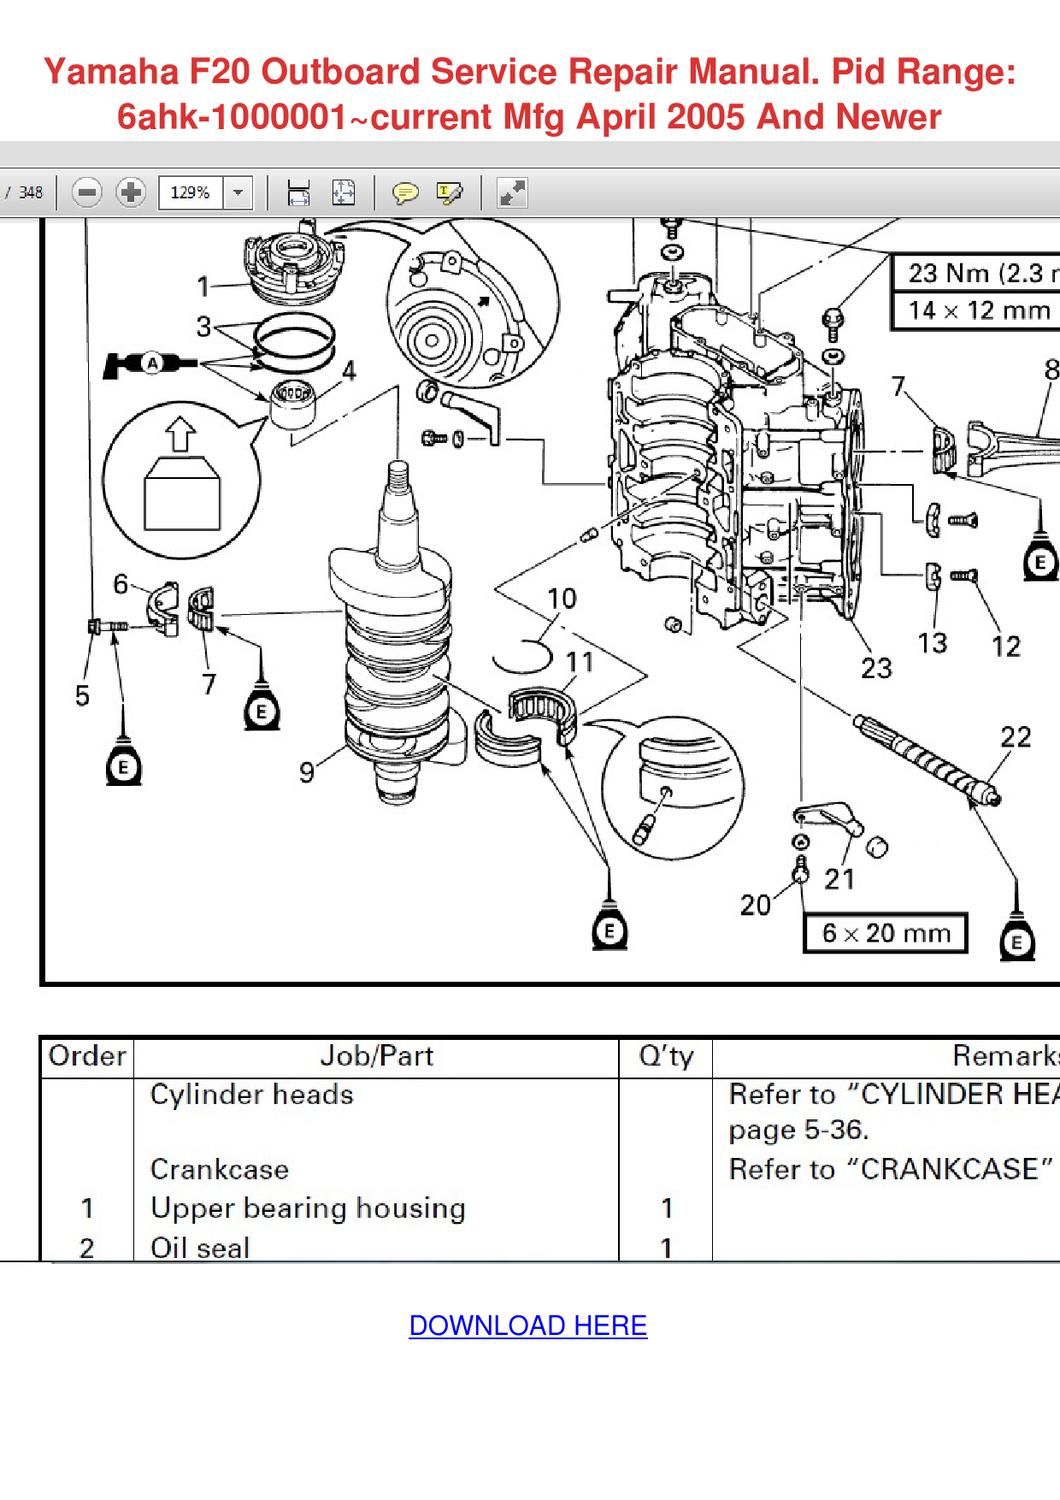 chevy s10 owners manual free download